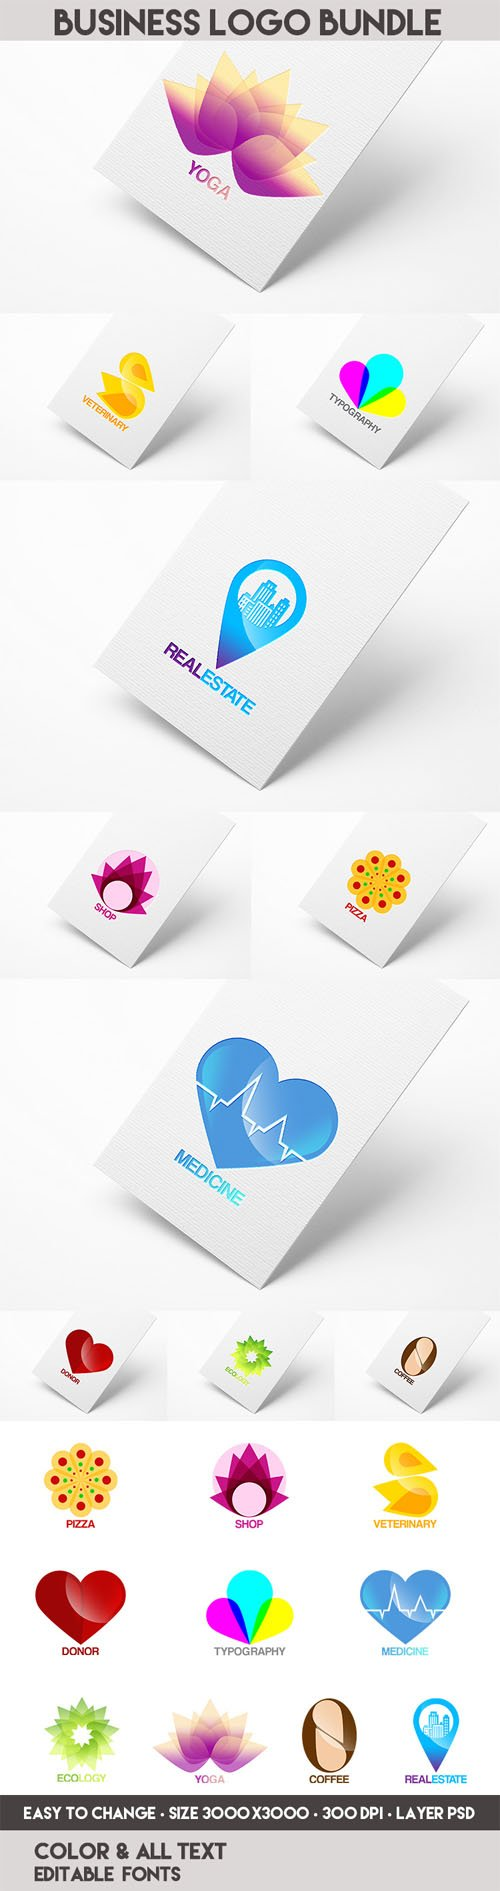 10 Business Logo Bundle PSD Templates